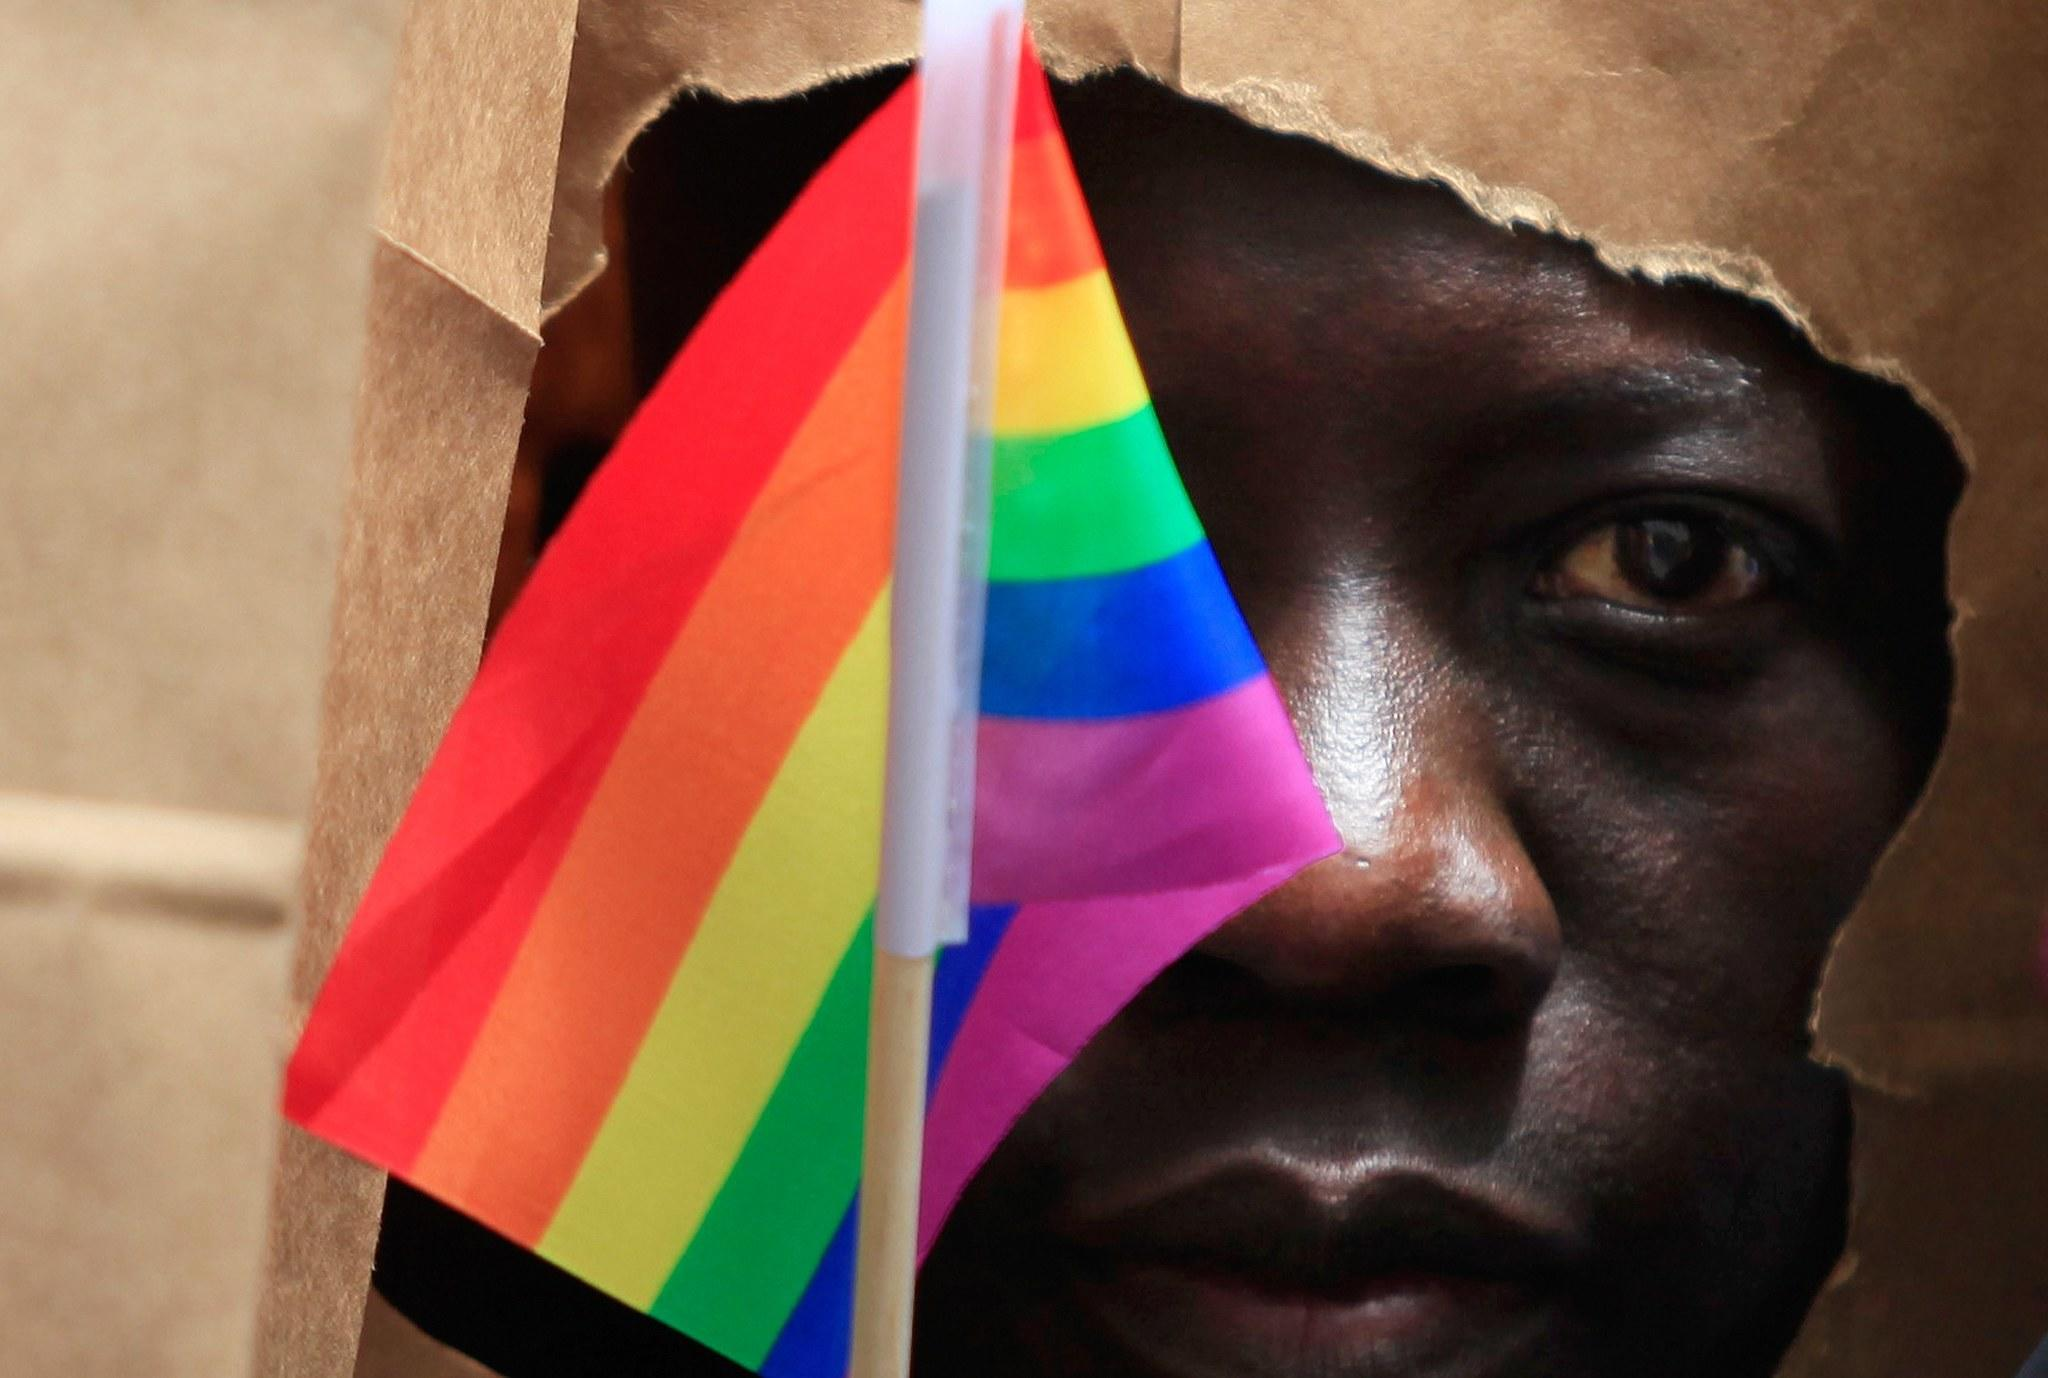 An asylum seeker from Uganda covers his face with a paper bag in order to protect his identity during the Pride Parade in Boston, June 8, 2013.